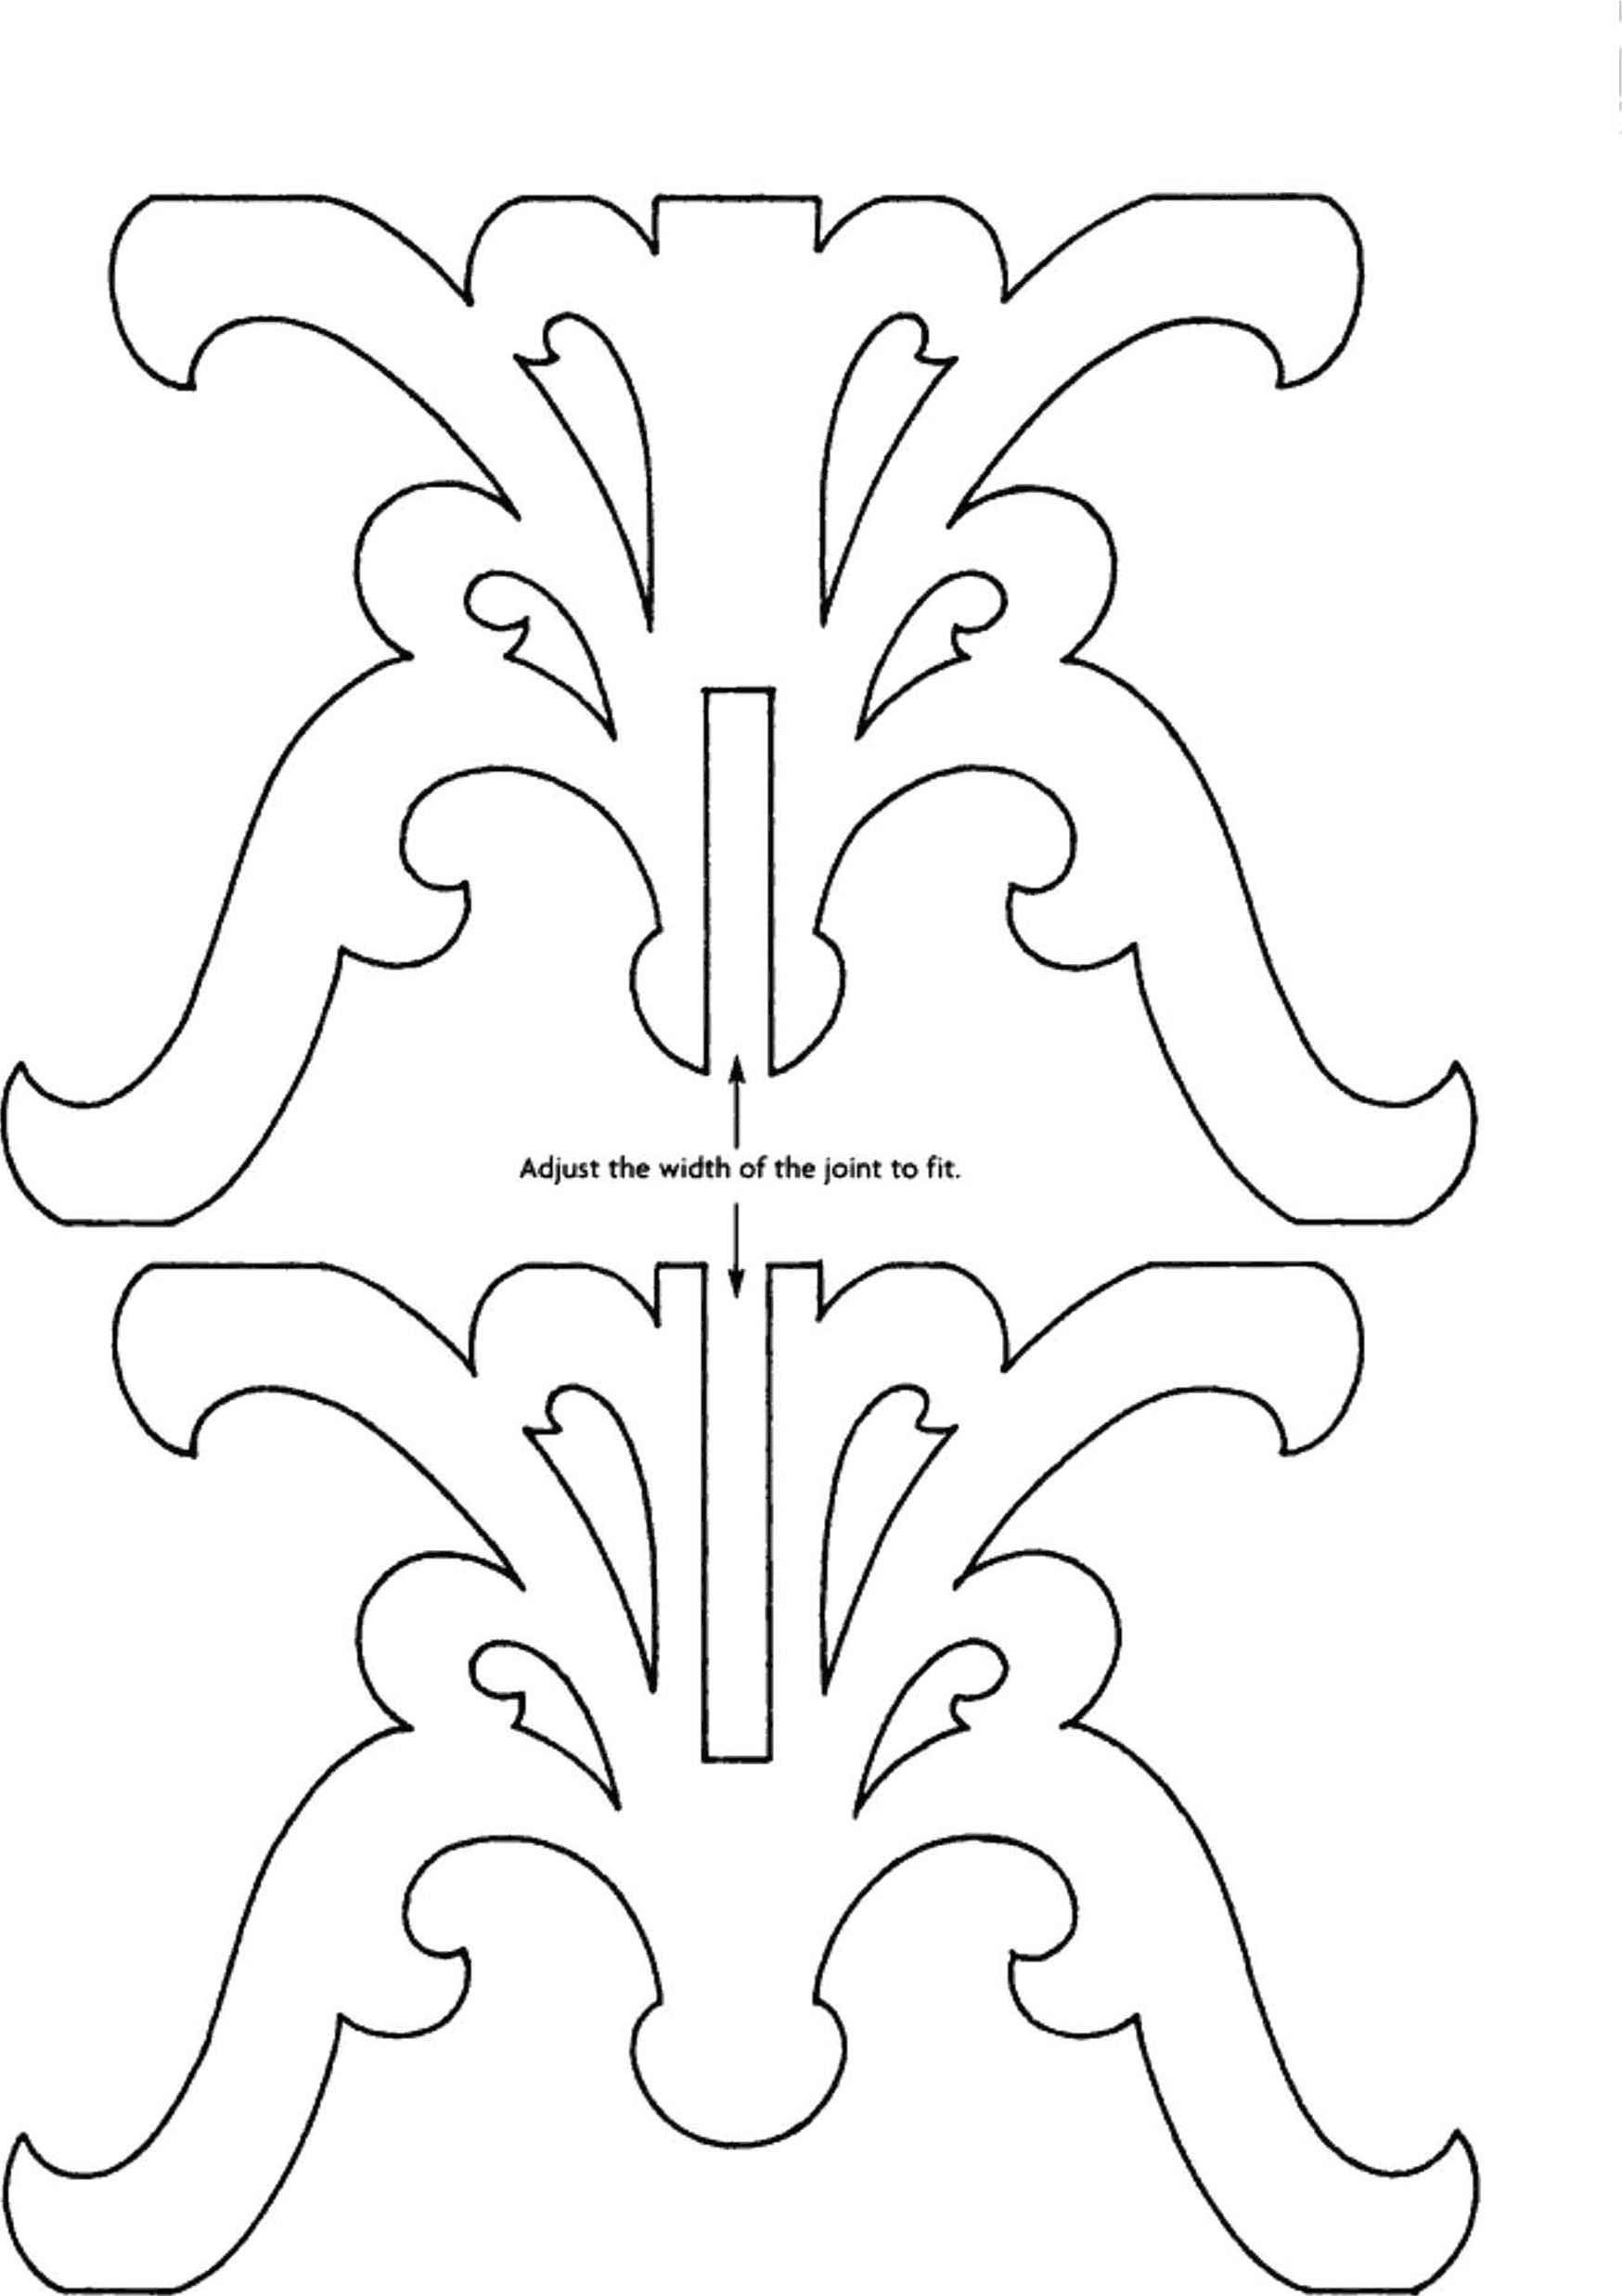 Scroll Saw Doll Furniture Patterns Plans DIY Free Download Free Plans ...